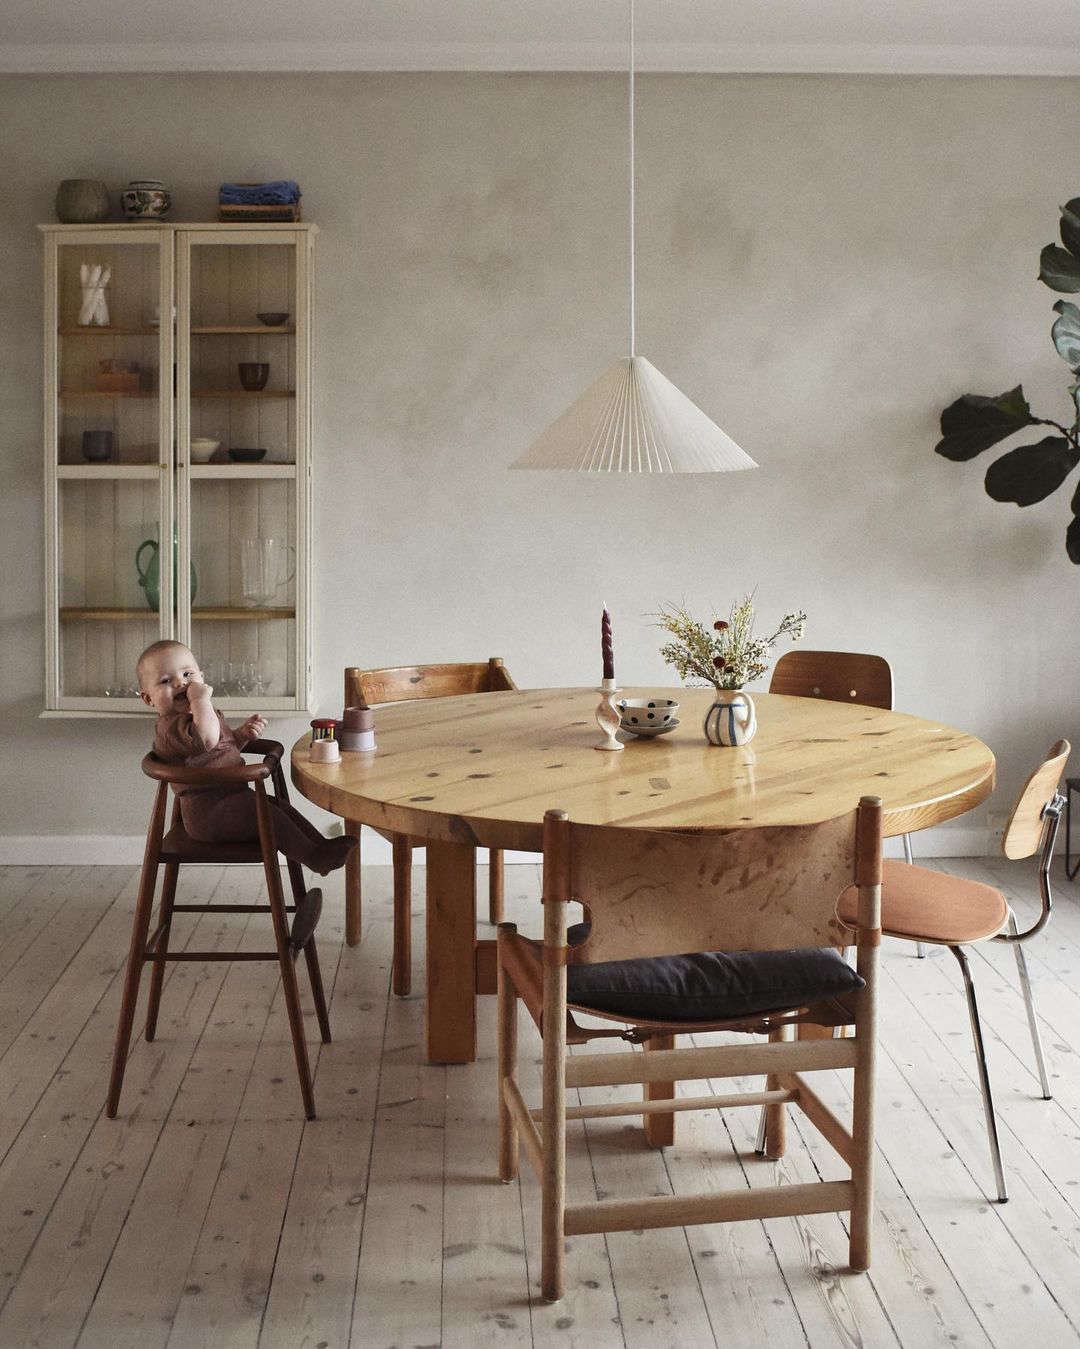 Everything old is new again, especially when the vintage pieces are as expertly curated as they are in this Copenhagen home. Photograph courtesy of Johanne Landbo and @femte.til.venstre, from Femte Til Venstre: A Danish Couple's Thoughtfully Appointed  Townhouse in Copenhagen.